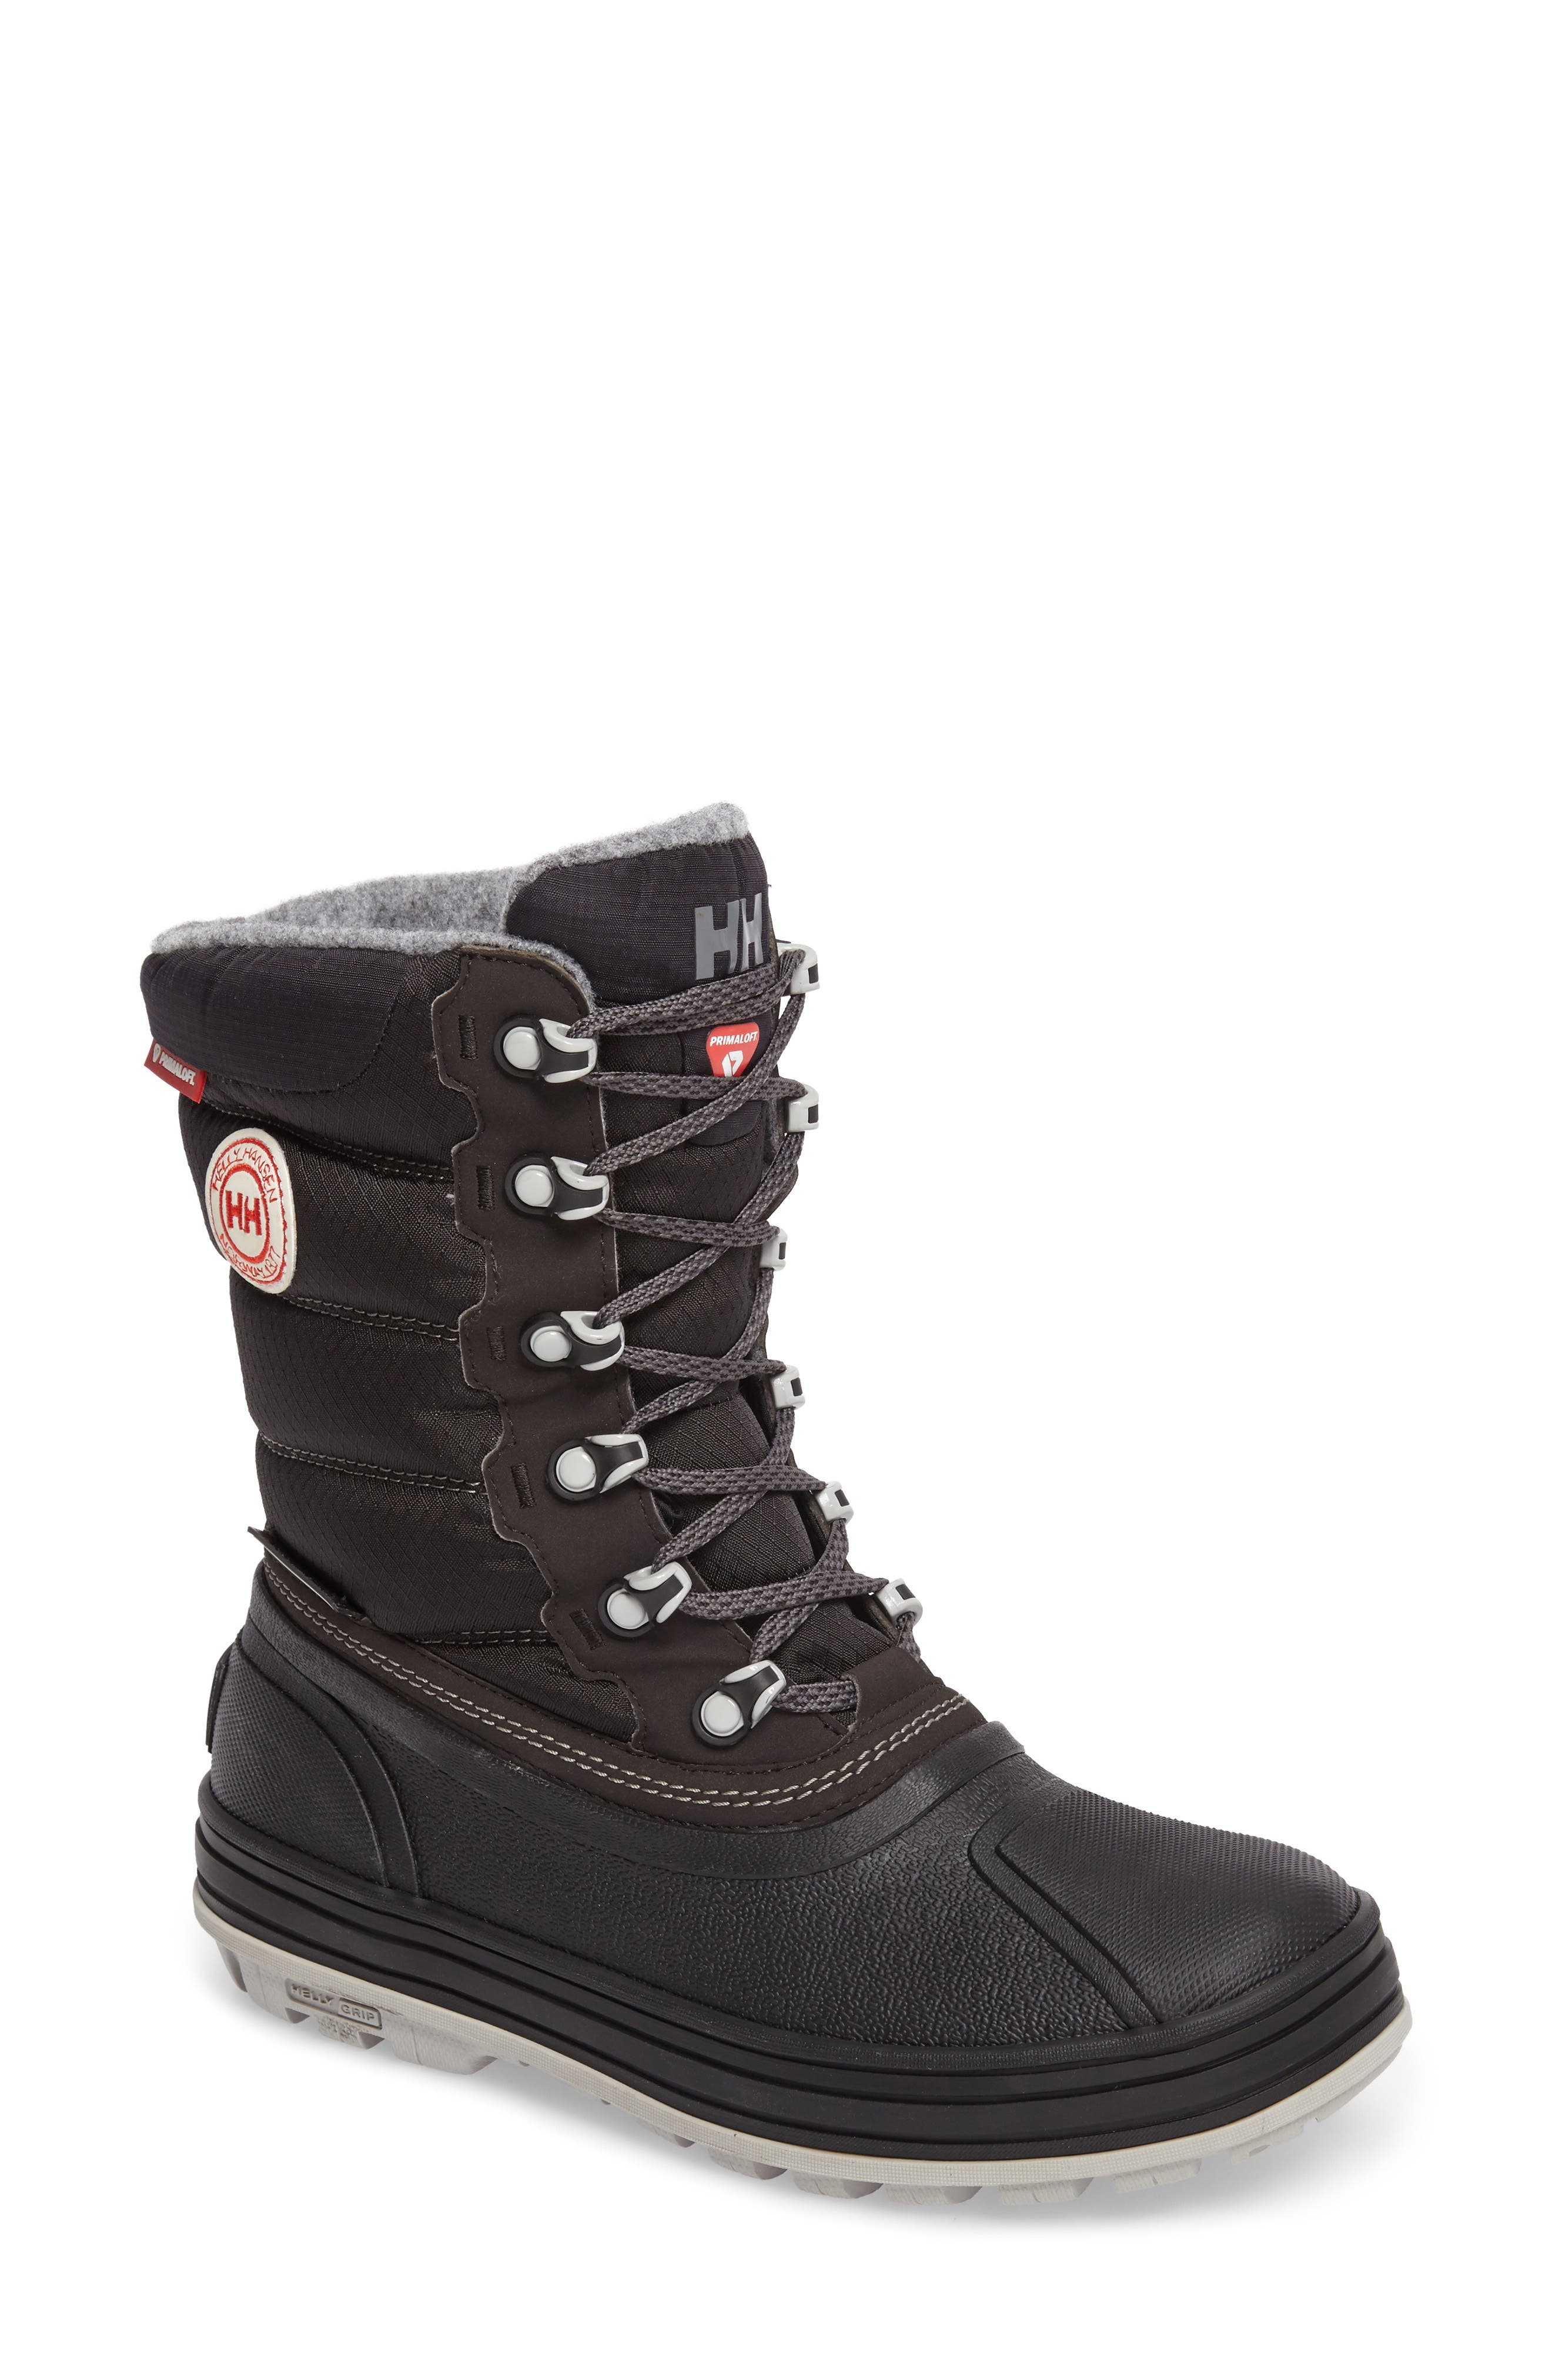 Tundra CWB Snow Boot,                         Main,                         color, Jet Black